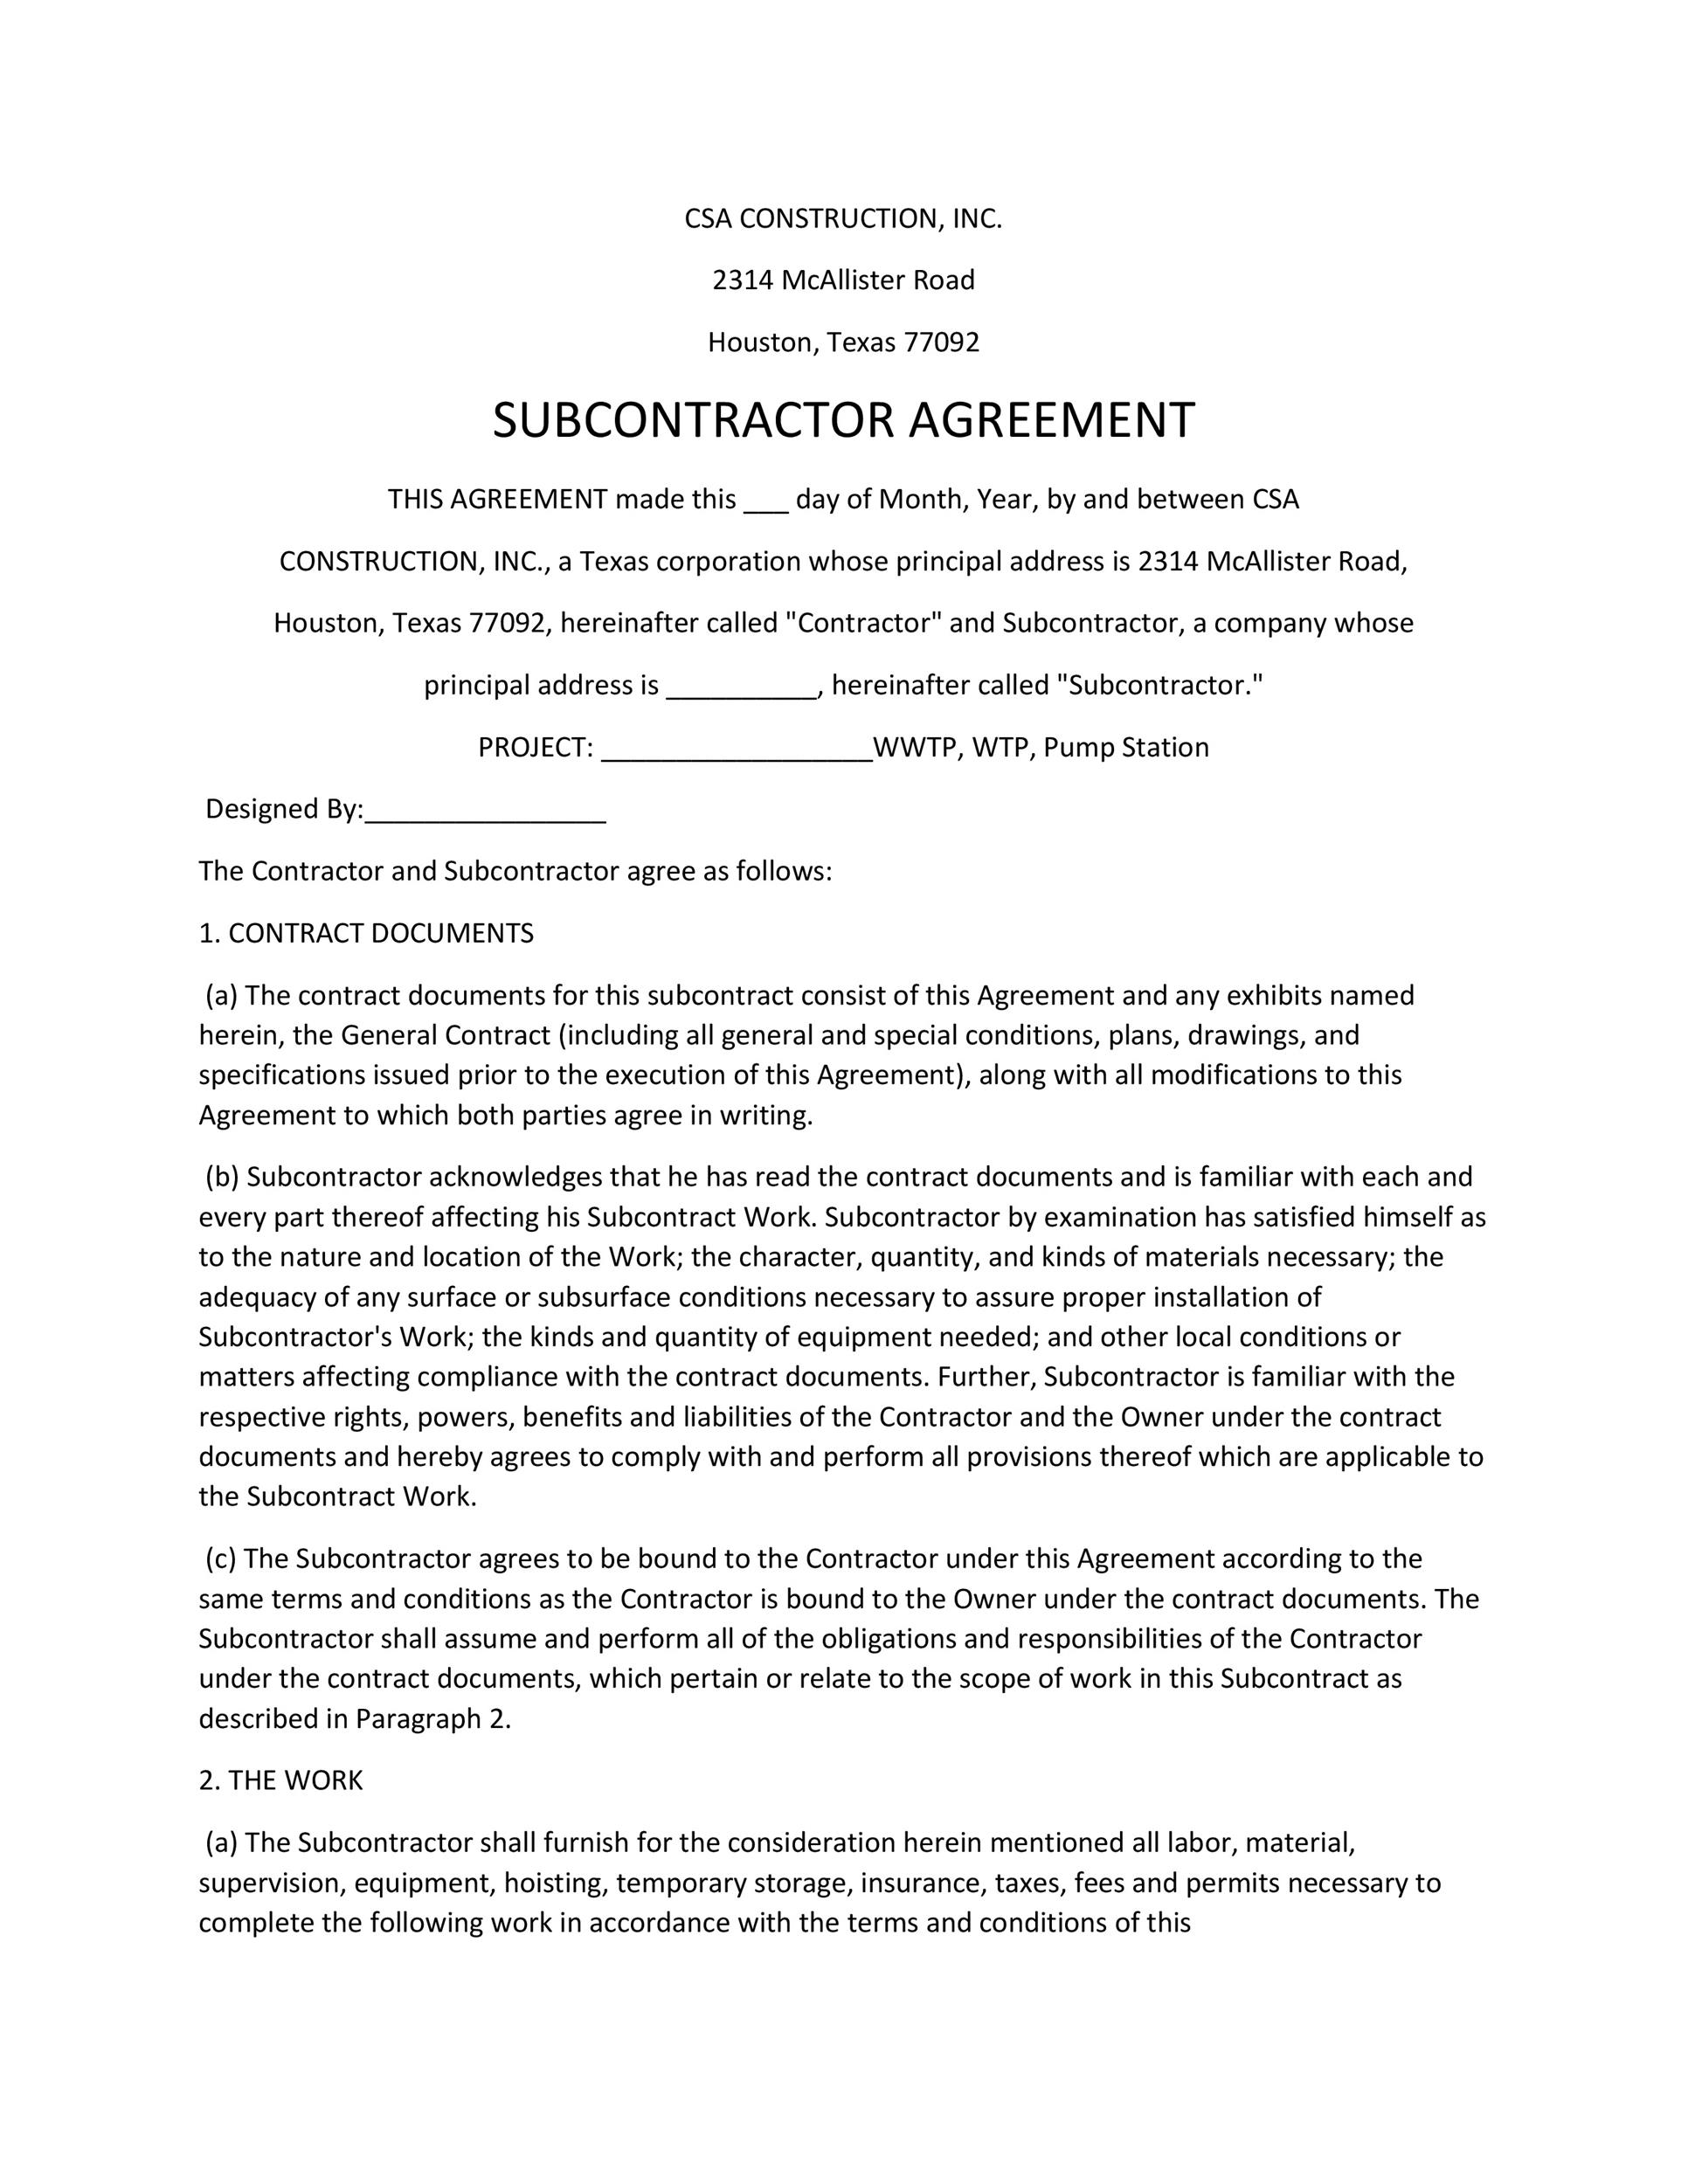 Free Subcontractor Agreement 18